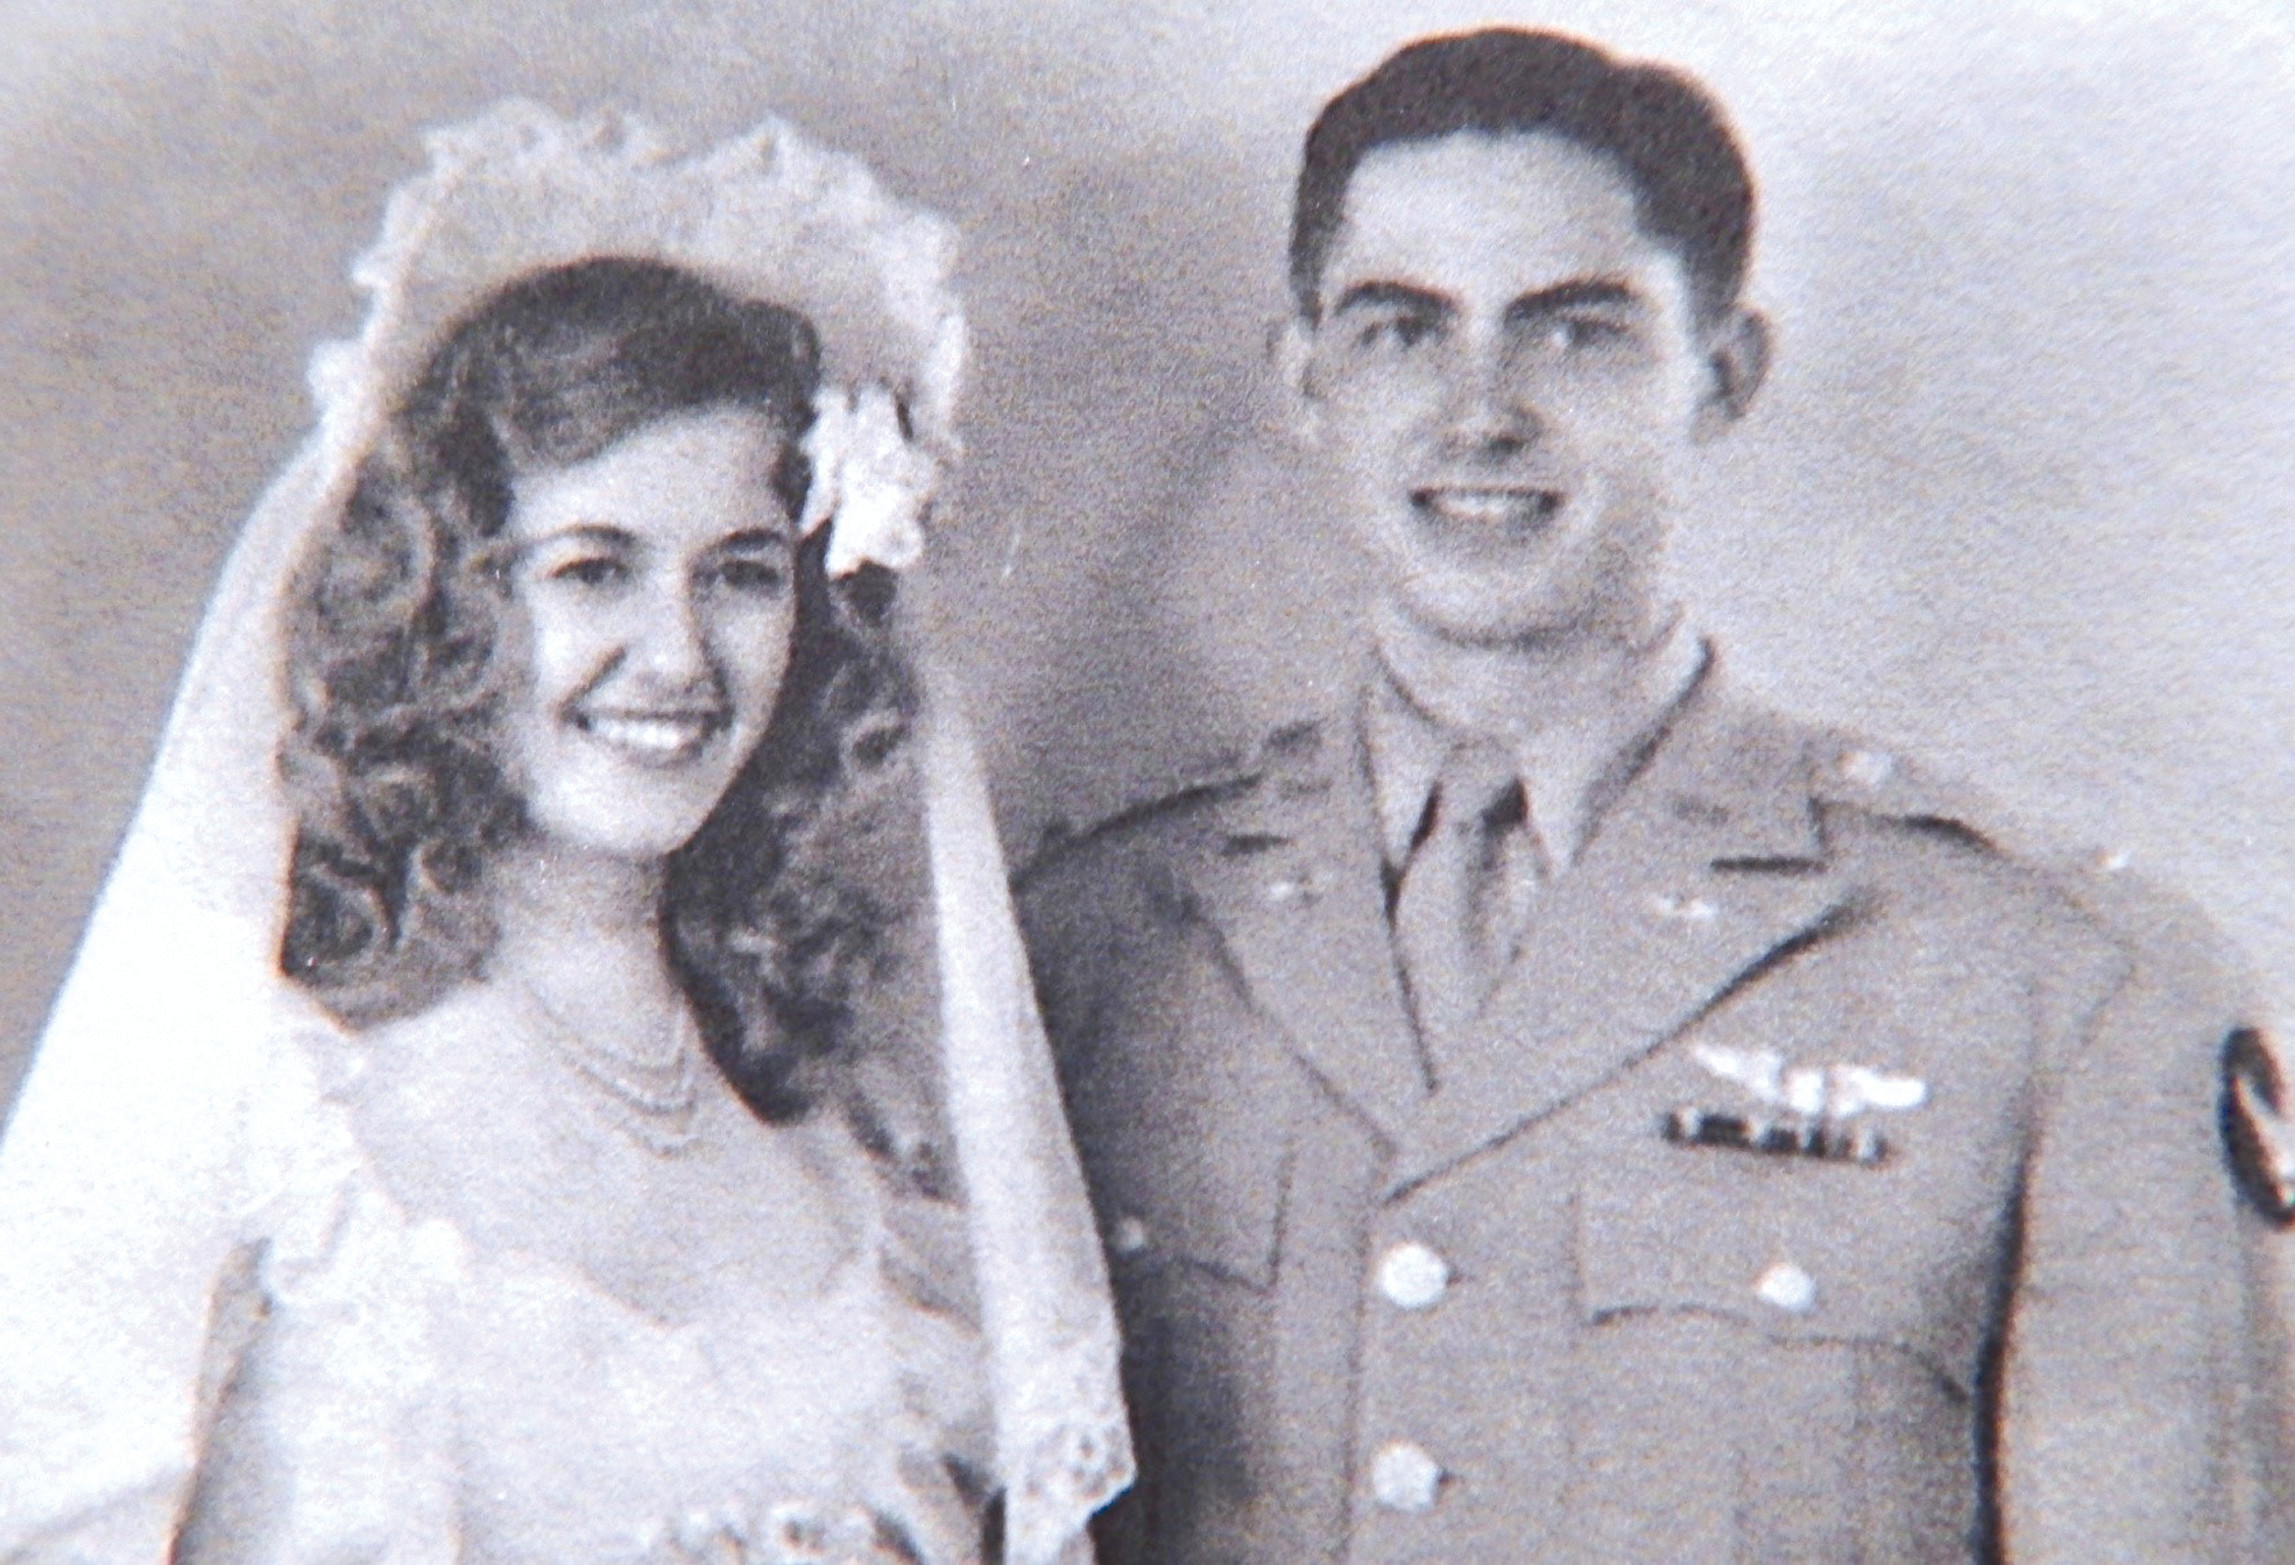 Lt. Charles C. Heckel married Jacqueline Heckel 28 days after he returned to the United States after being liberated as a POW in Germany in 1945.